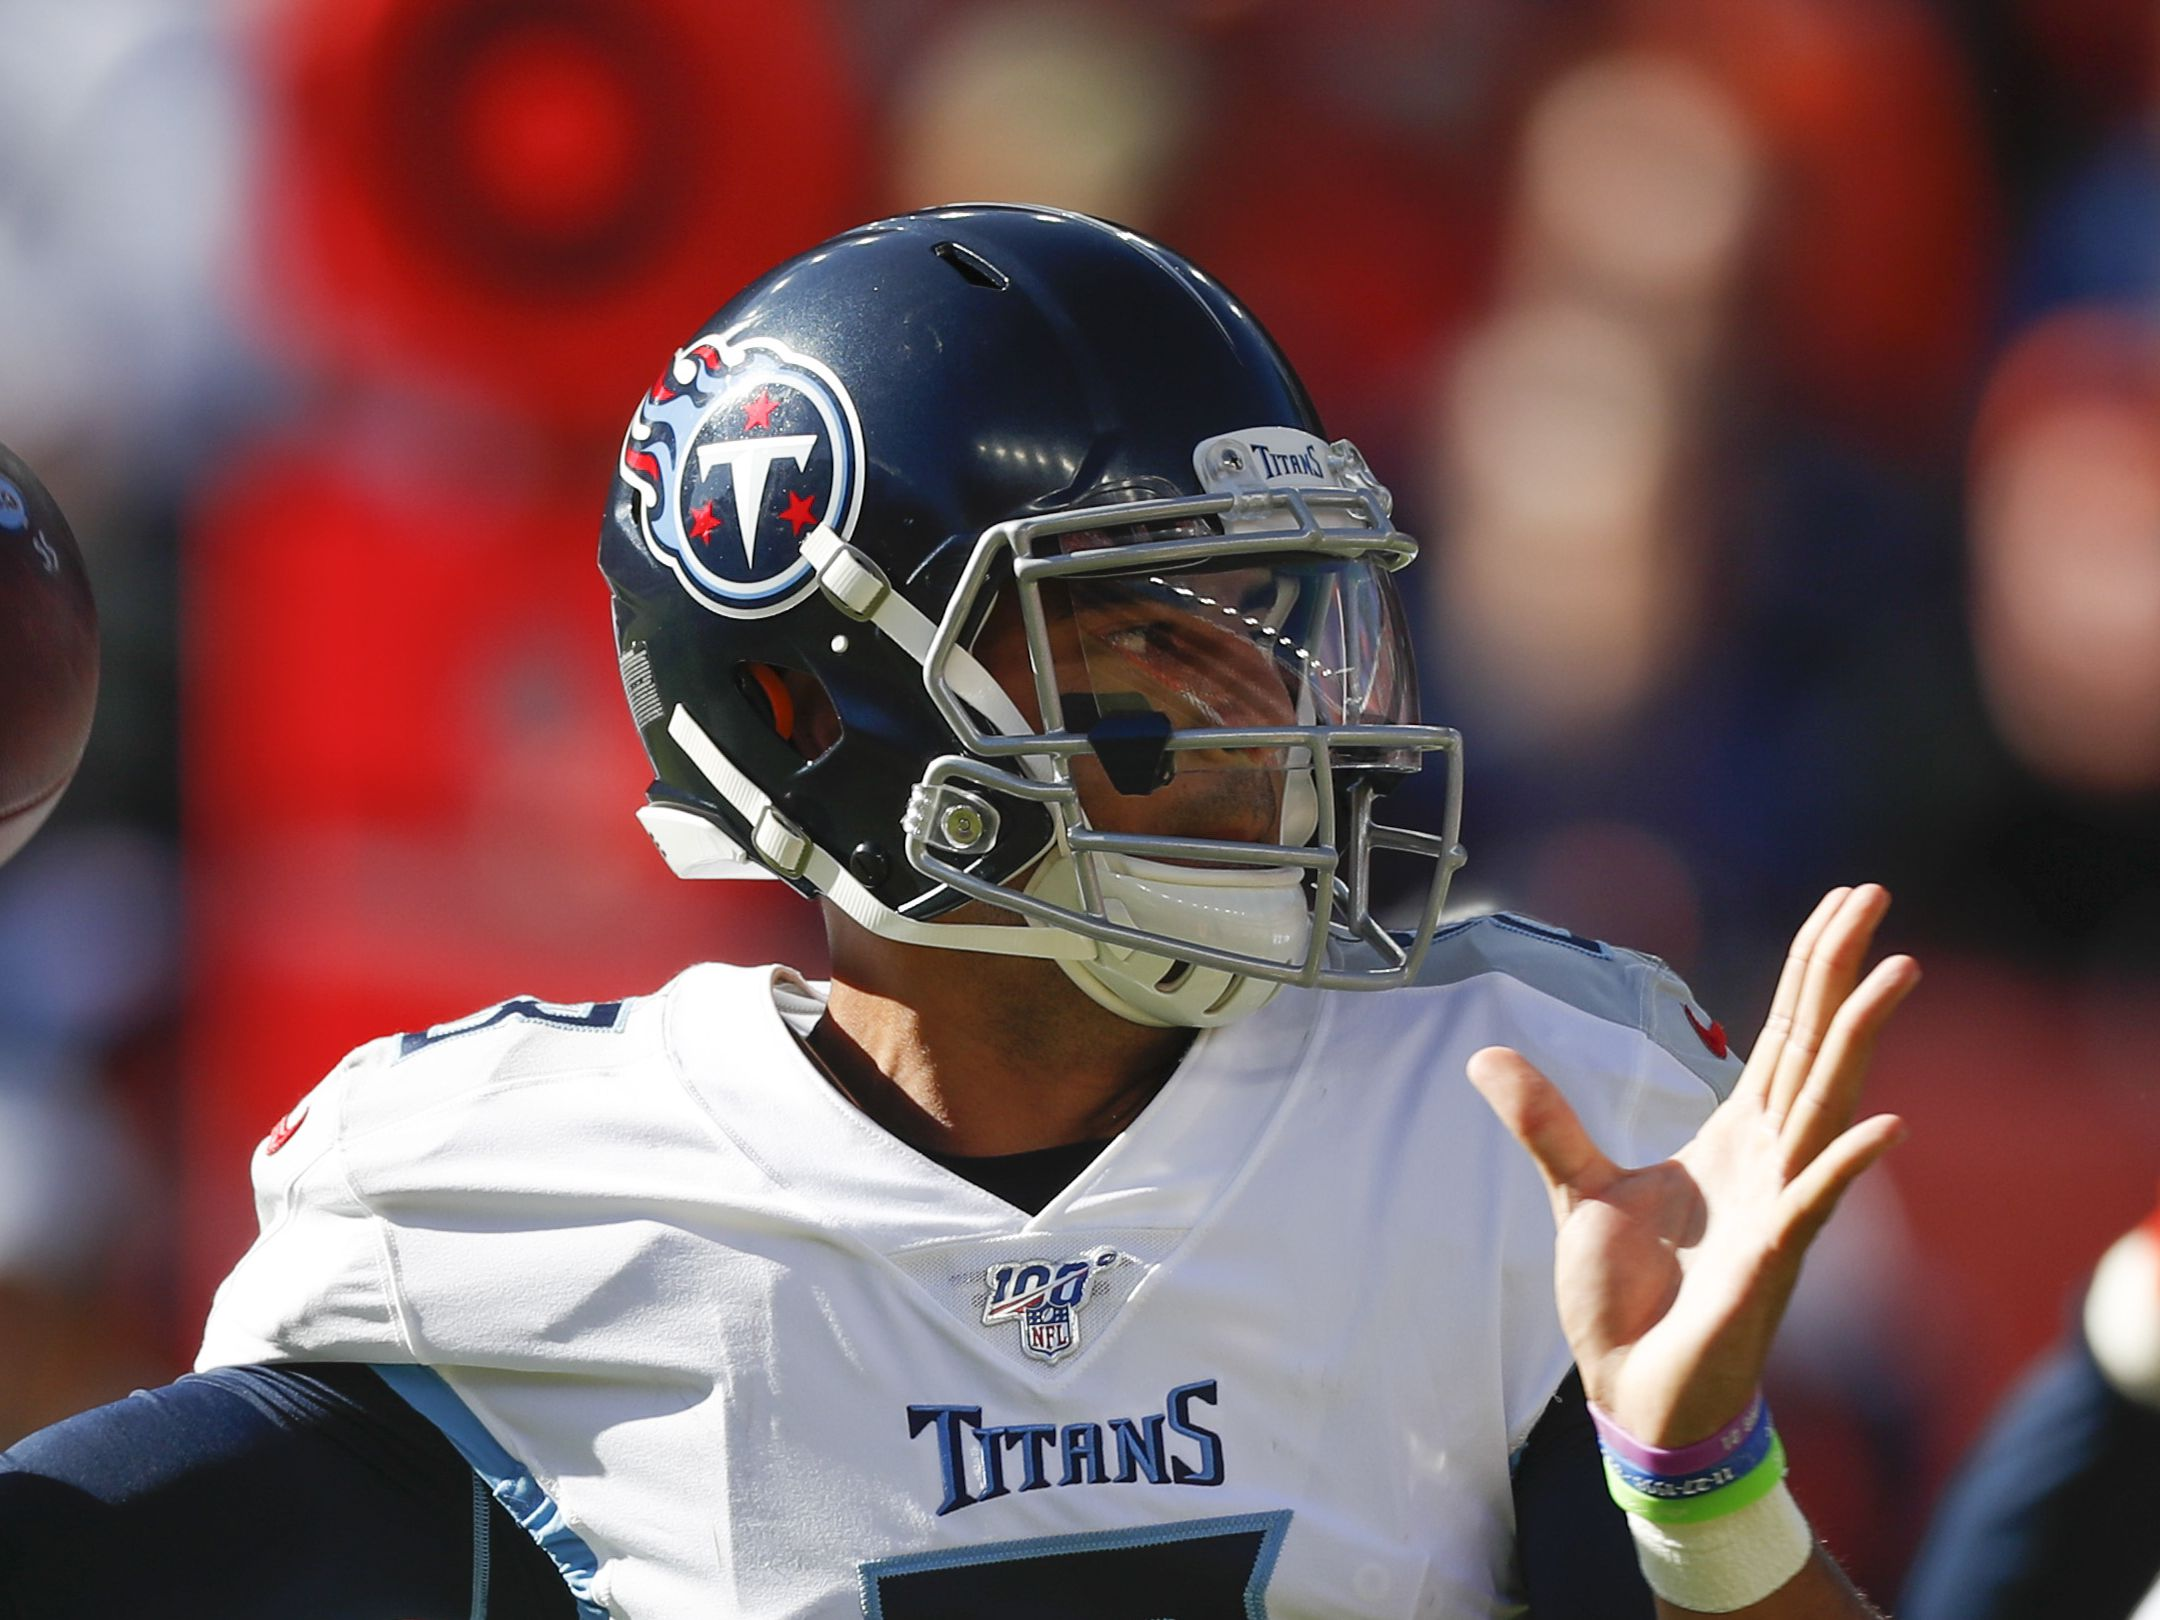 Titans to bench Mariota, start Tannehill at quarterback against Chargers